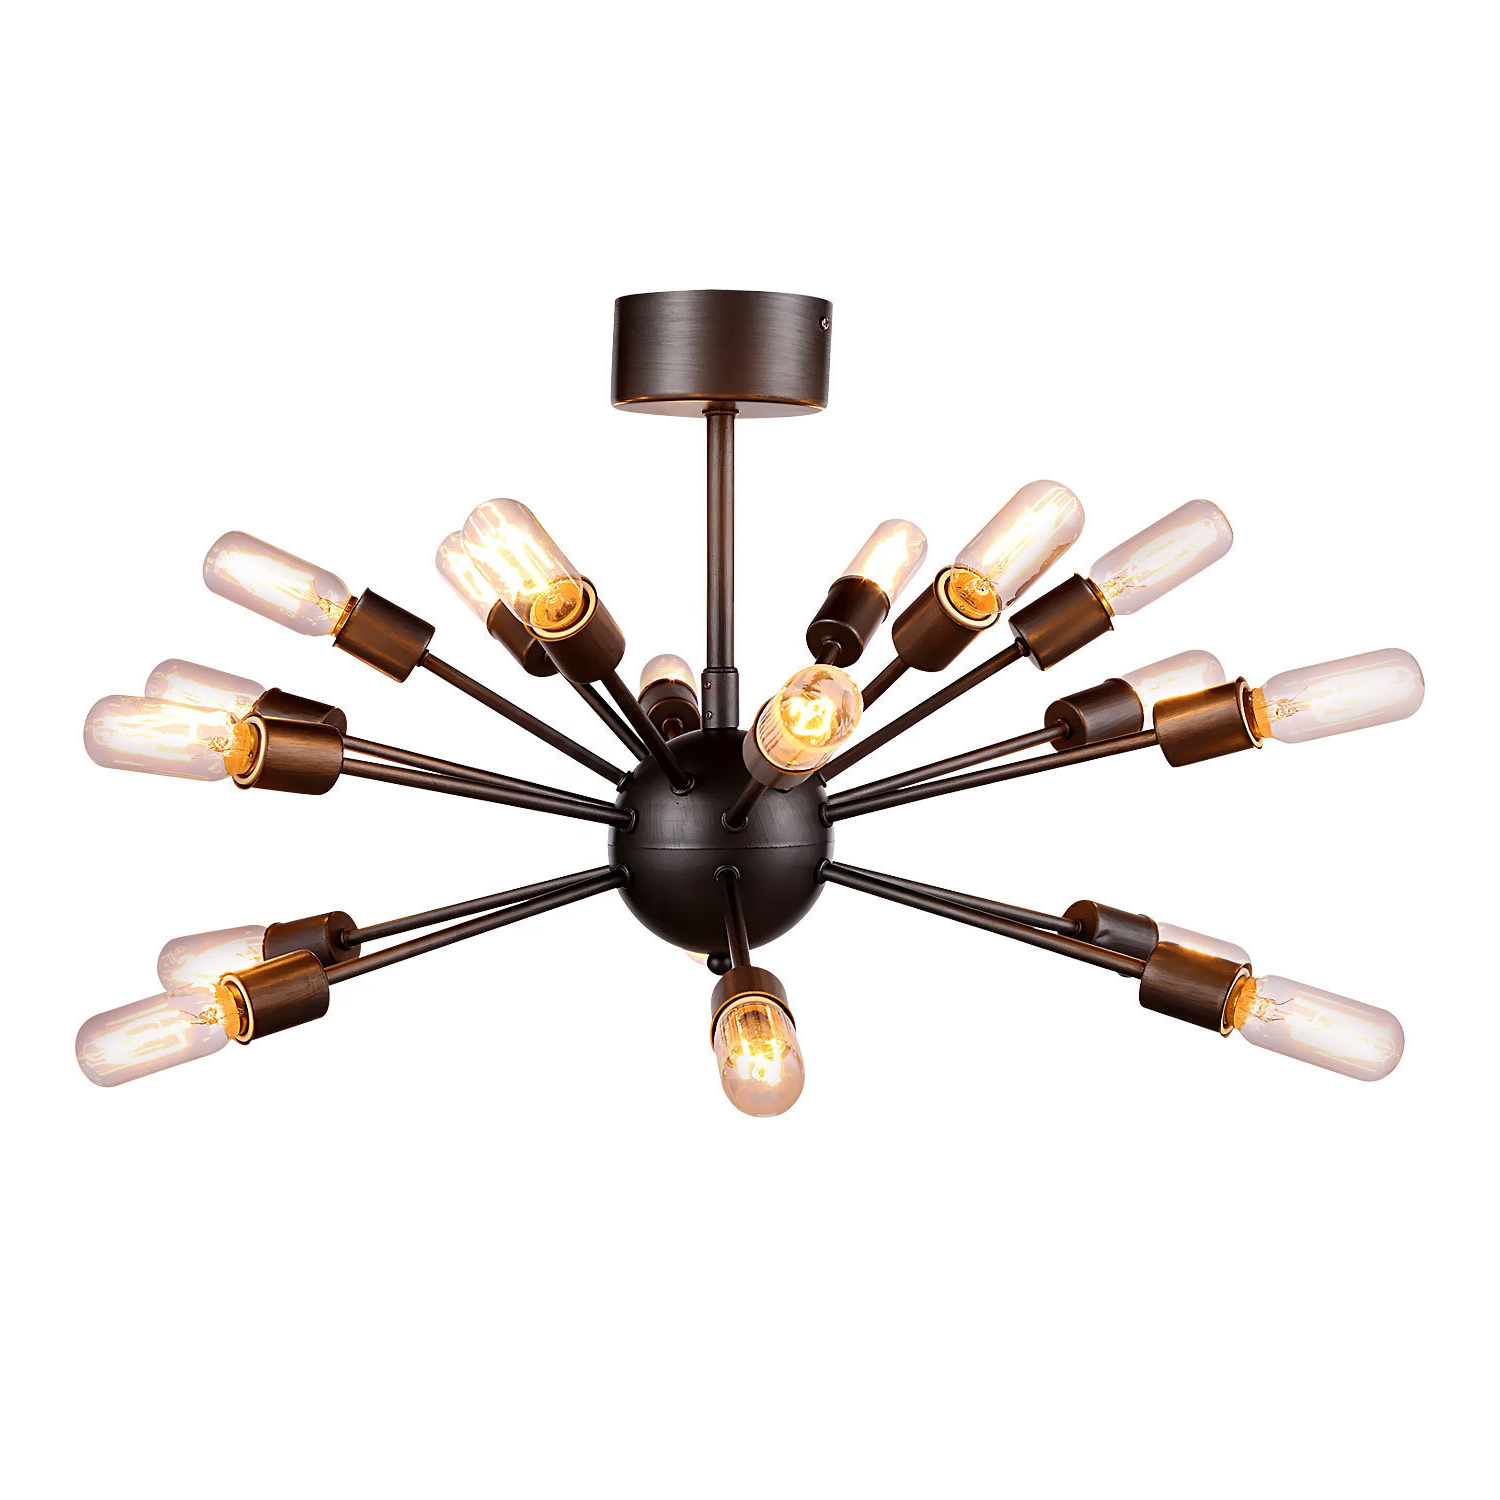 Defreitas 18 Light Sputnik Chandeliers Regarding Popular Groveland 18 Light Sputnik Chandelier (Gallery 15 of 25)